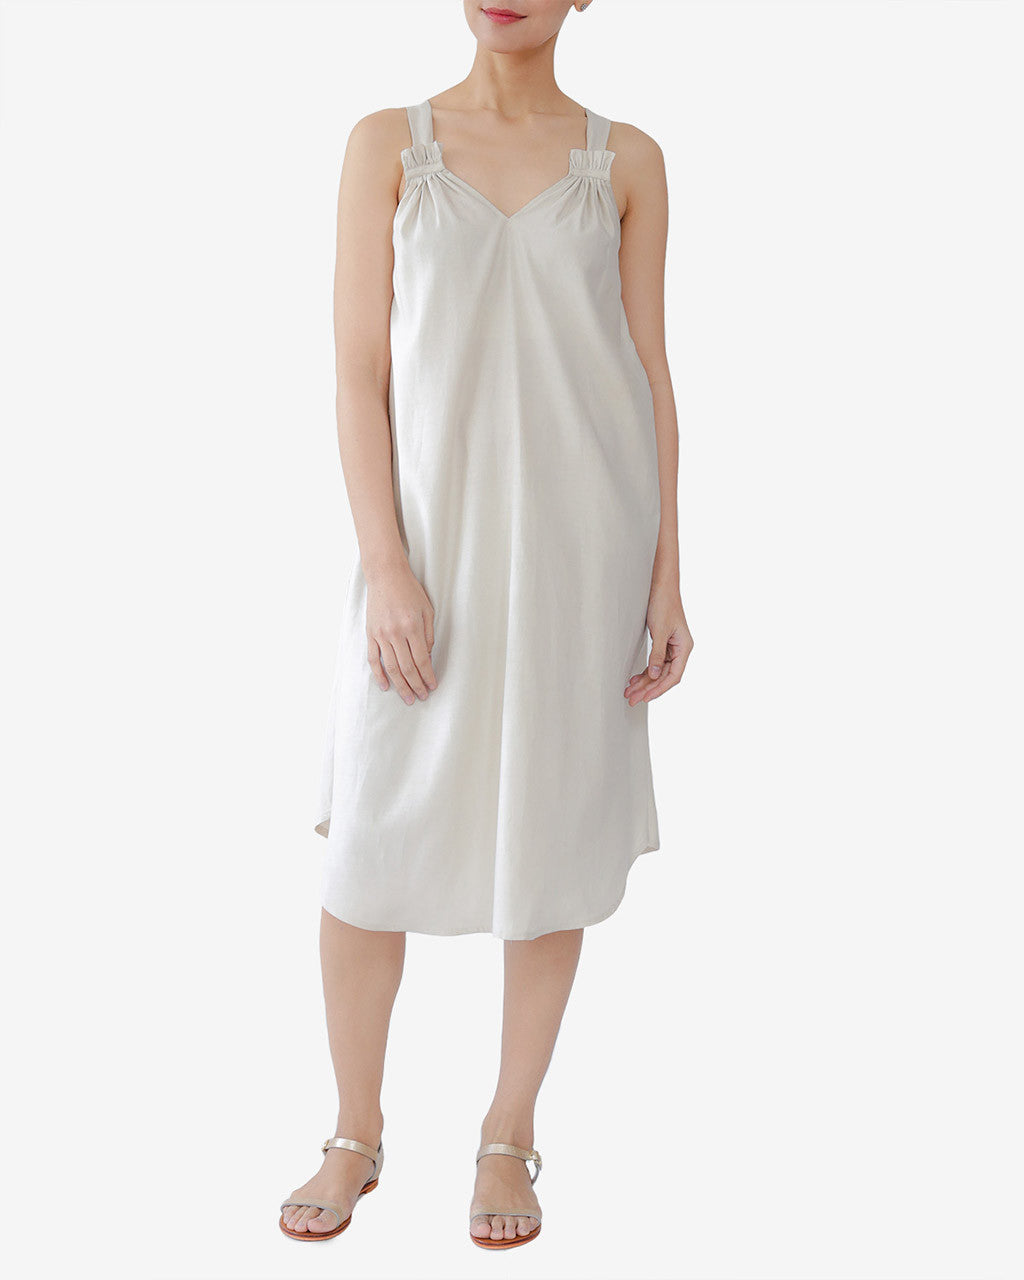 Pilar Nursing Dress